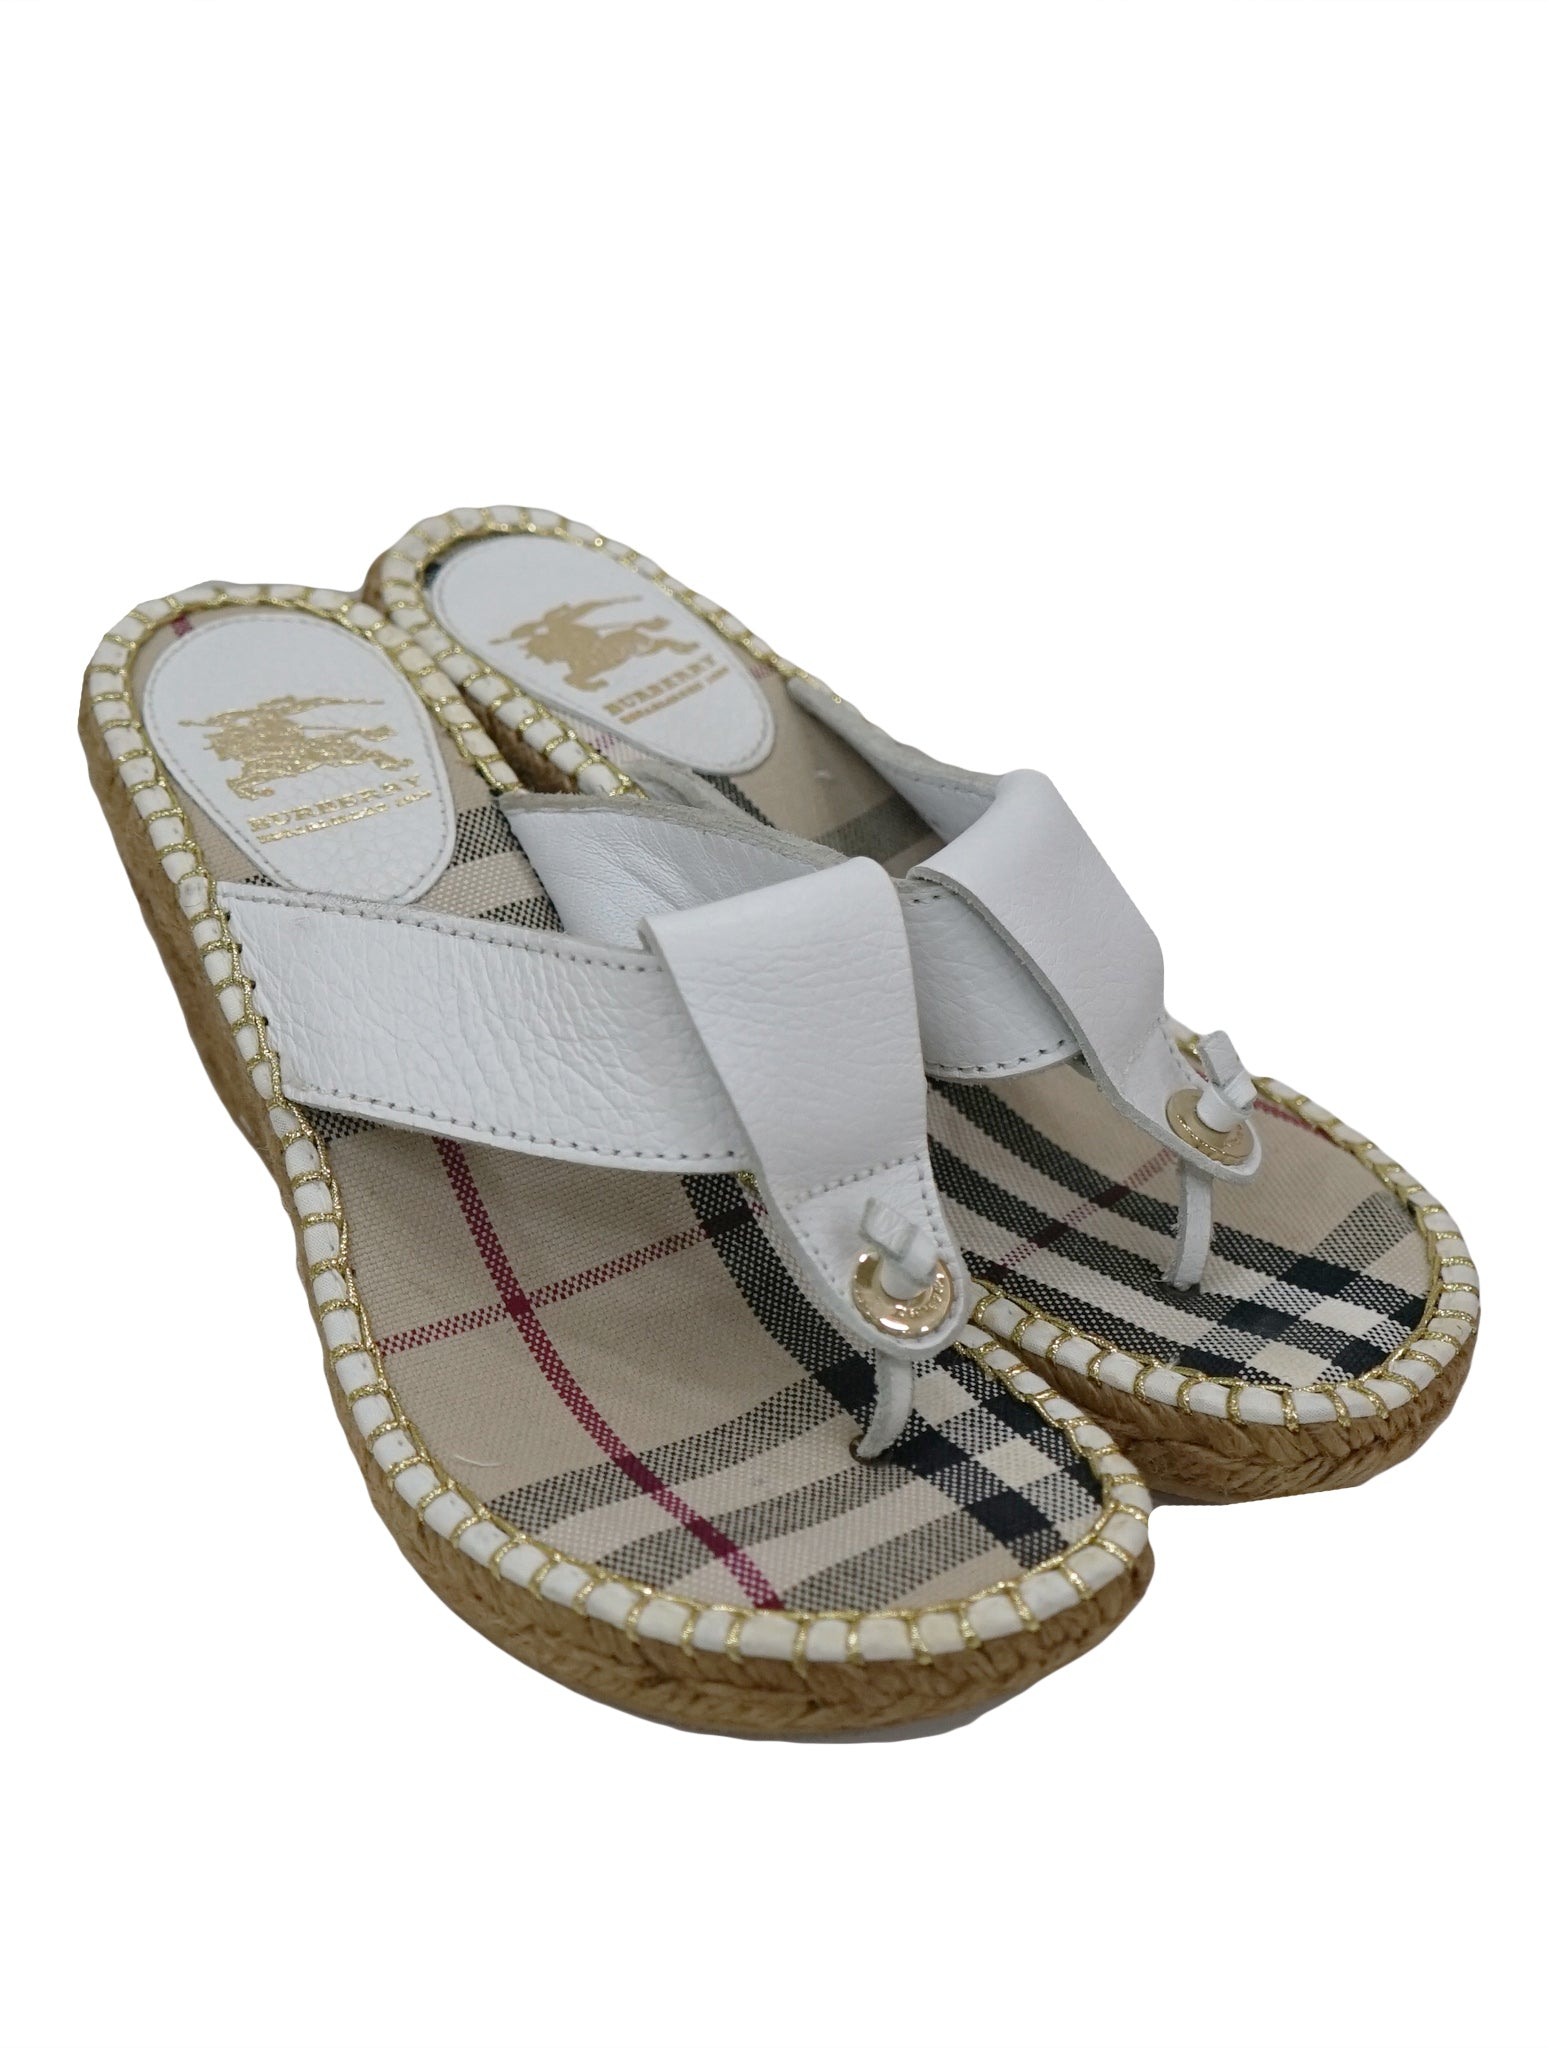 b2a87e36ec7e BURBERRY LEATHER ESPADRILLE WEDGE THONG – Kidsstyleforless